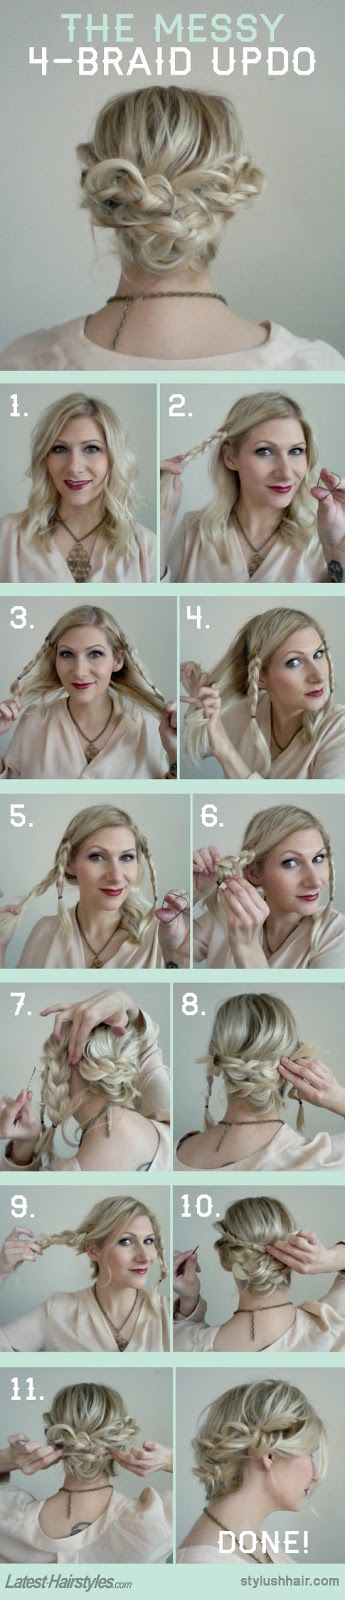 THE MESSY FOUR BRAID UPDO